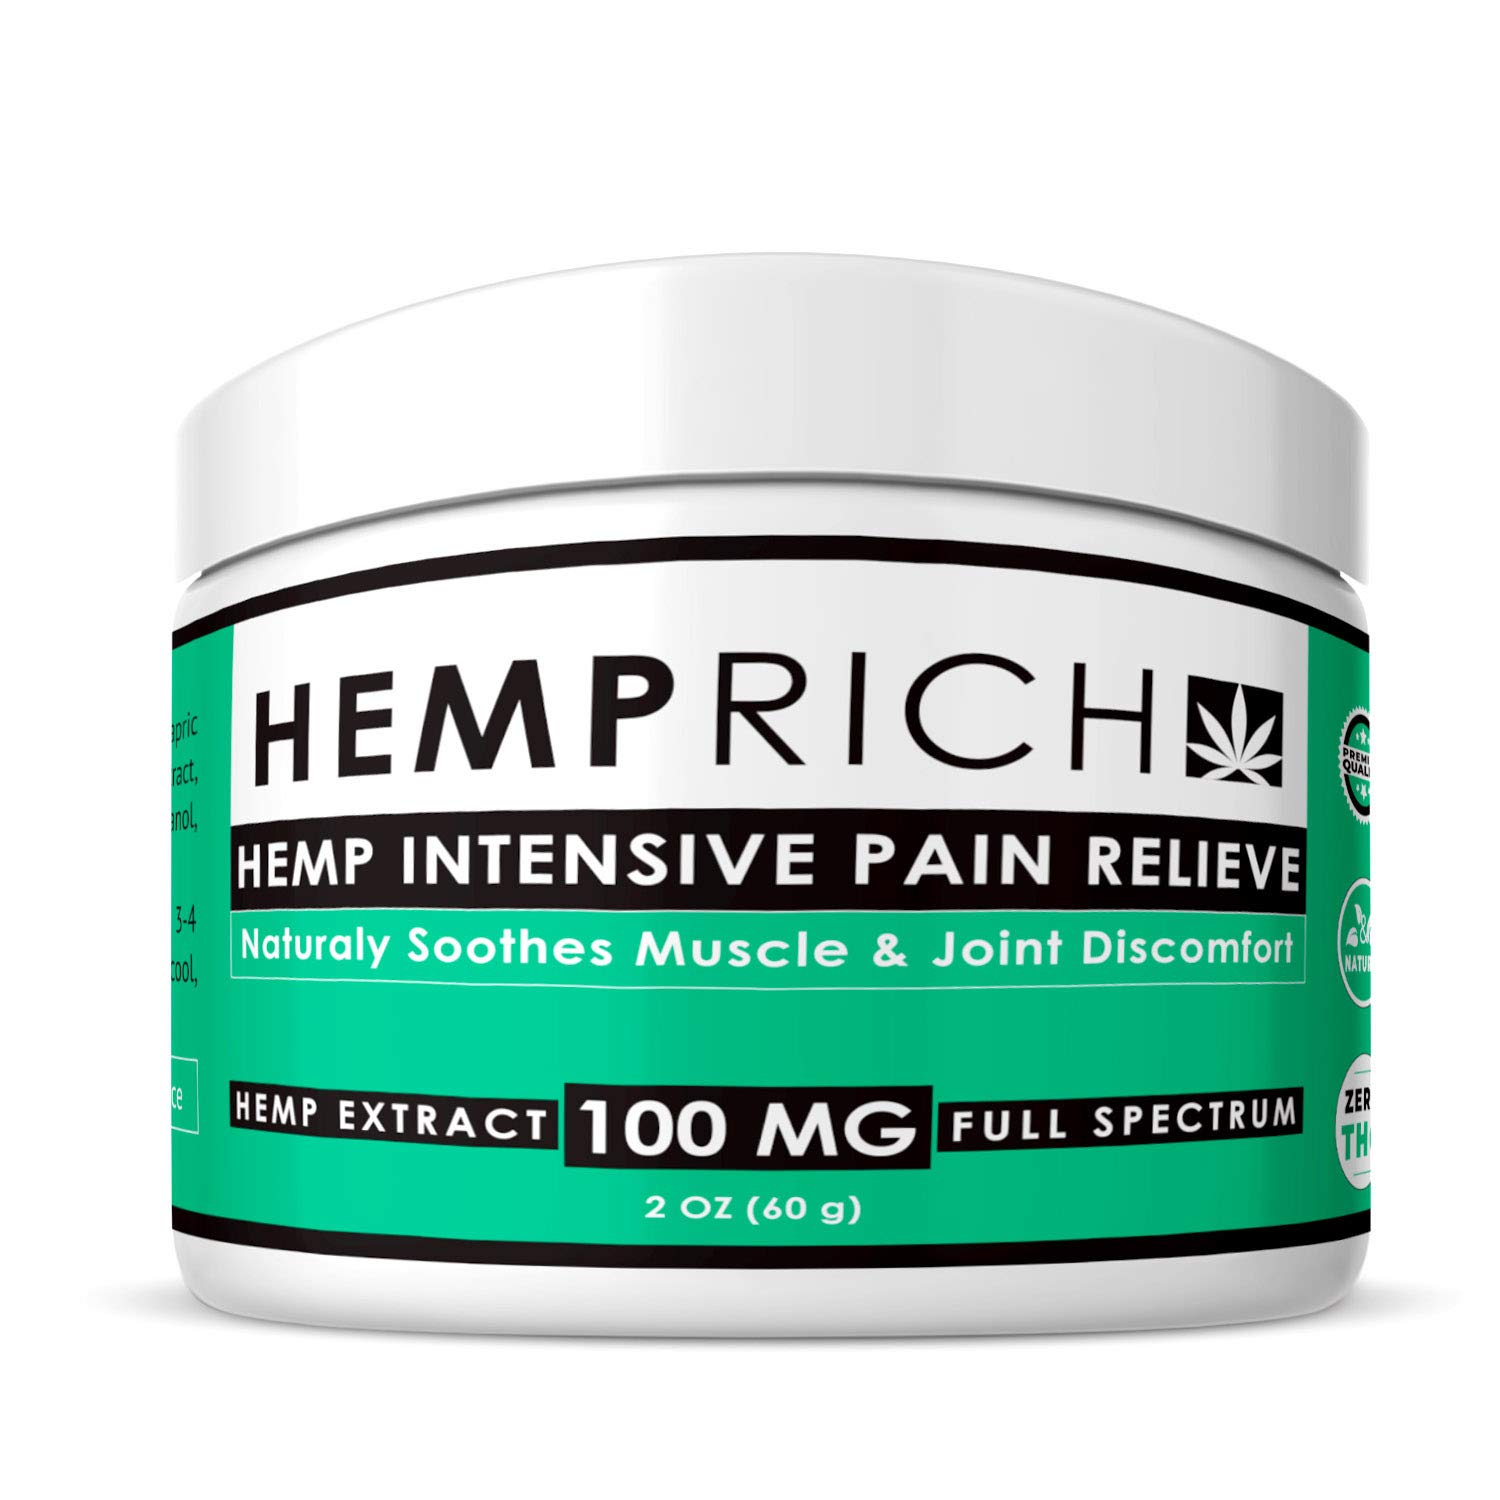 Hemp Extract Pain Relief Cream - 100 Mg - Made in USA - Contains Arnica, MSM & 10% EMU Oil - Fast Acting Natural Pain Reliever for Inflammation, Muscle, Joint, Back, Knee & Arthritis Pain - Non-GMO